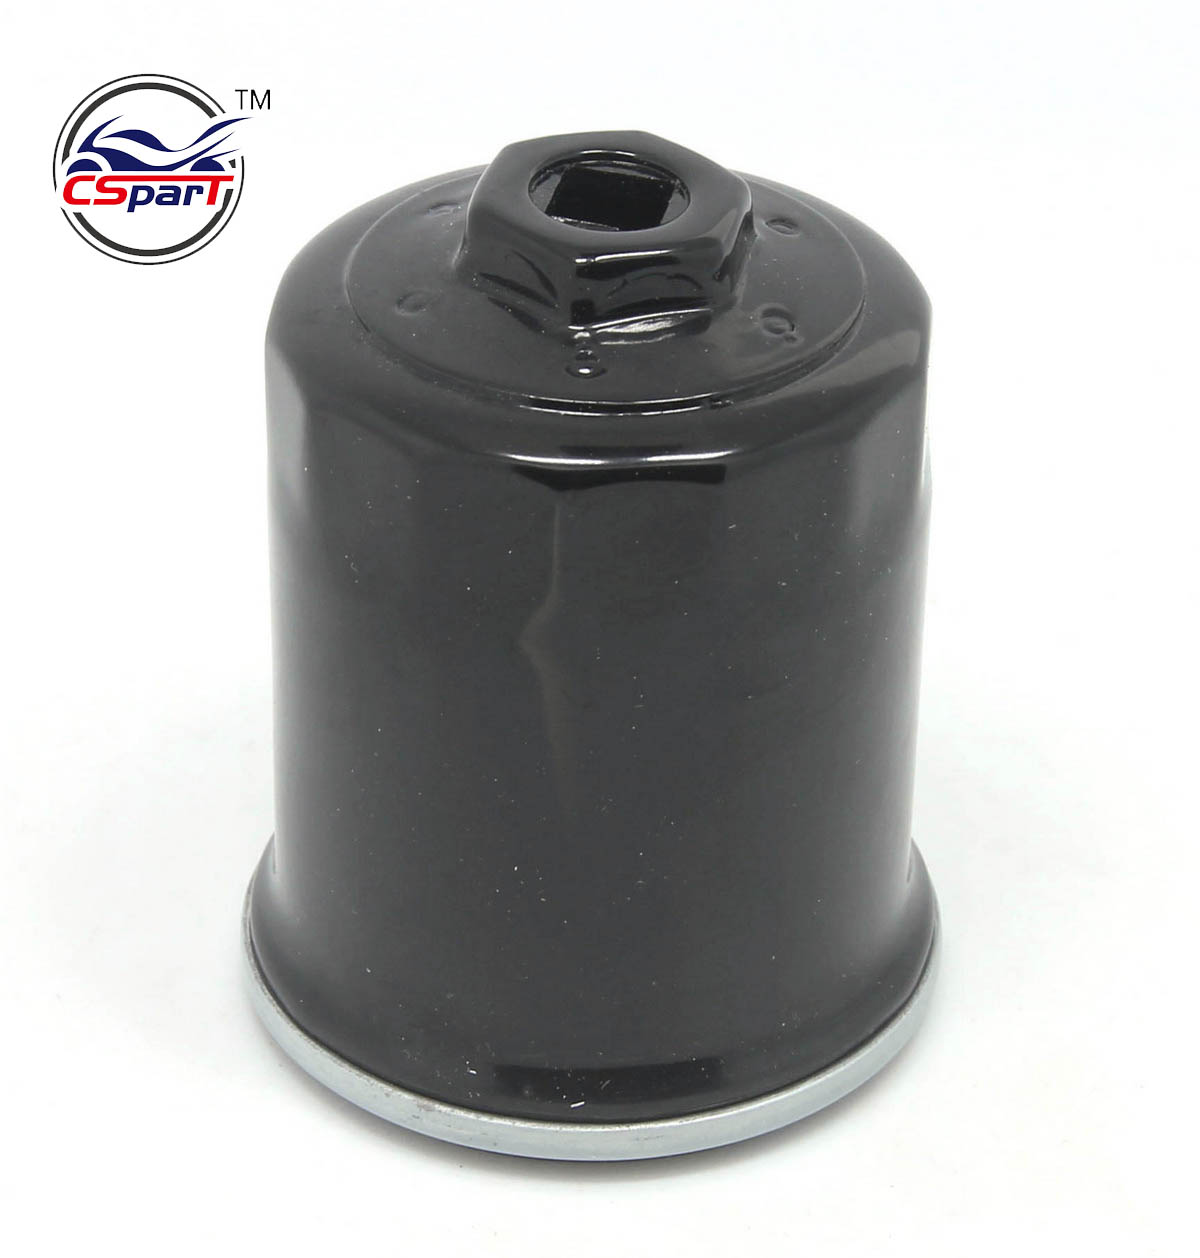 US $18 56 20% OFF|Linhai 520 520CC 550 550CC 600CC LH2V70 LH2V73 Oil Filter  ATV UTV Parts-in ATV Parts & Accessories from Automobiles & Motorcycles on